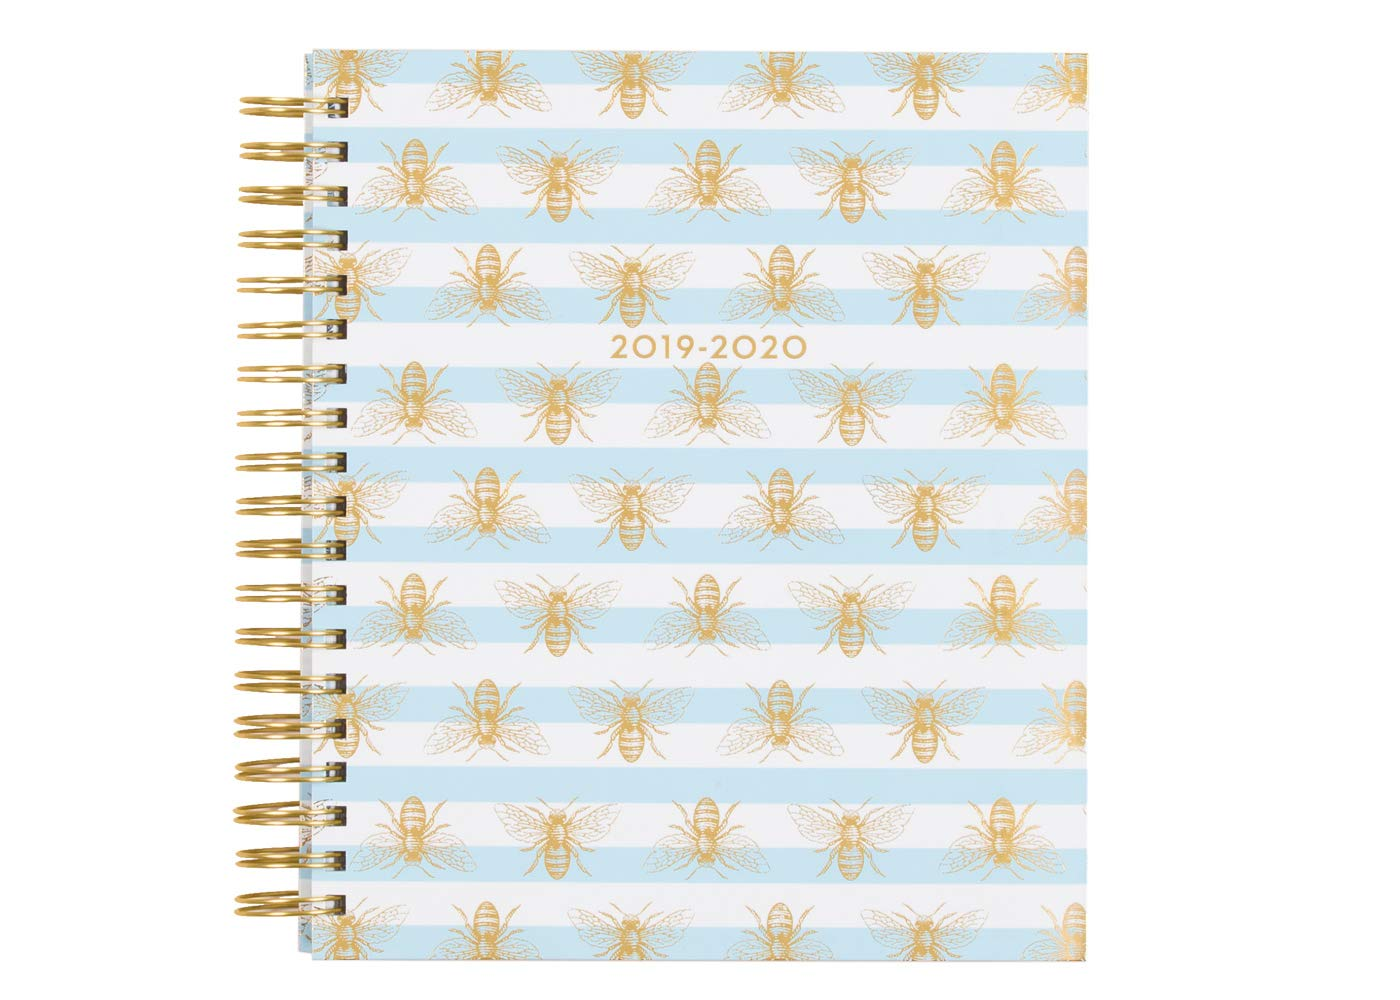 Dabney Lee for Blue Sky 2019-2020 Academic Year Daily & Monthly Planner, Hardcover, Gold-Tone Twin-Wire Binding, 8'' x 10'', Buzzed